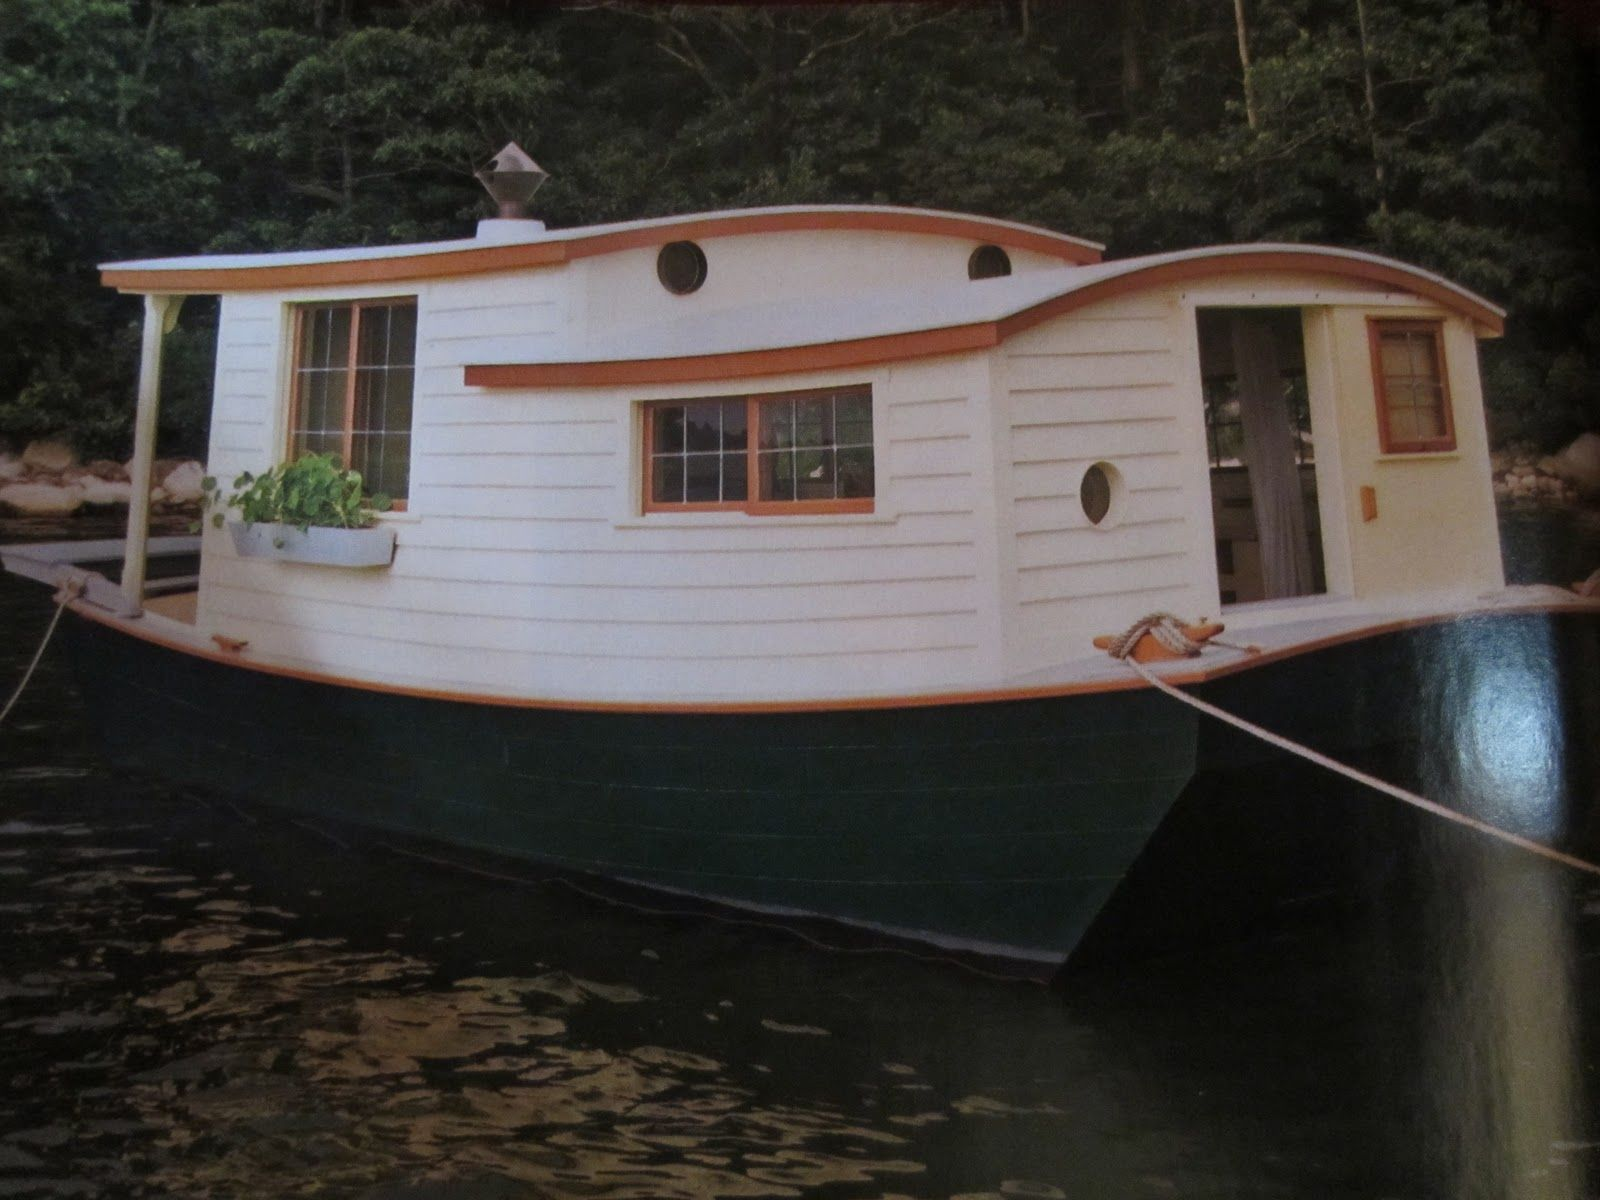 Shantyboat/Houseboat In Wooden Boat Magazine.